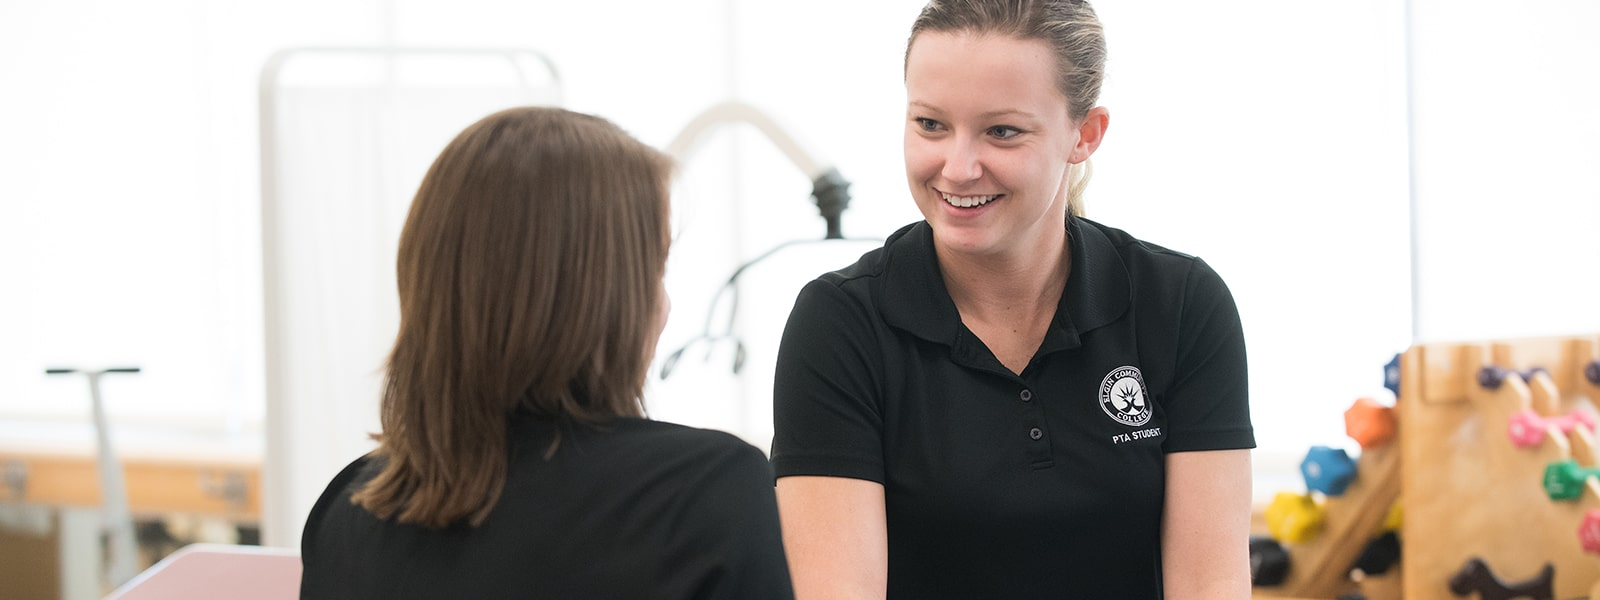 A Physical therapist assistant student working with a client.